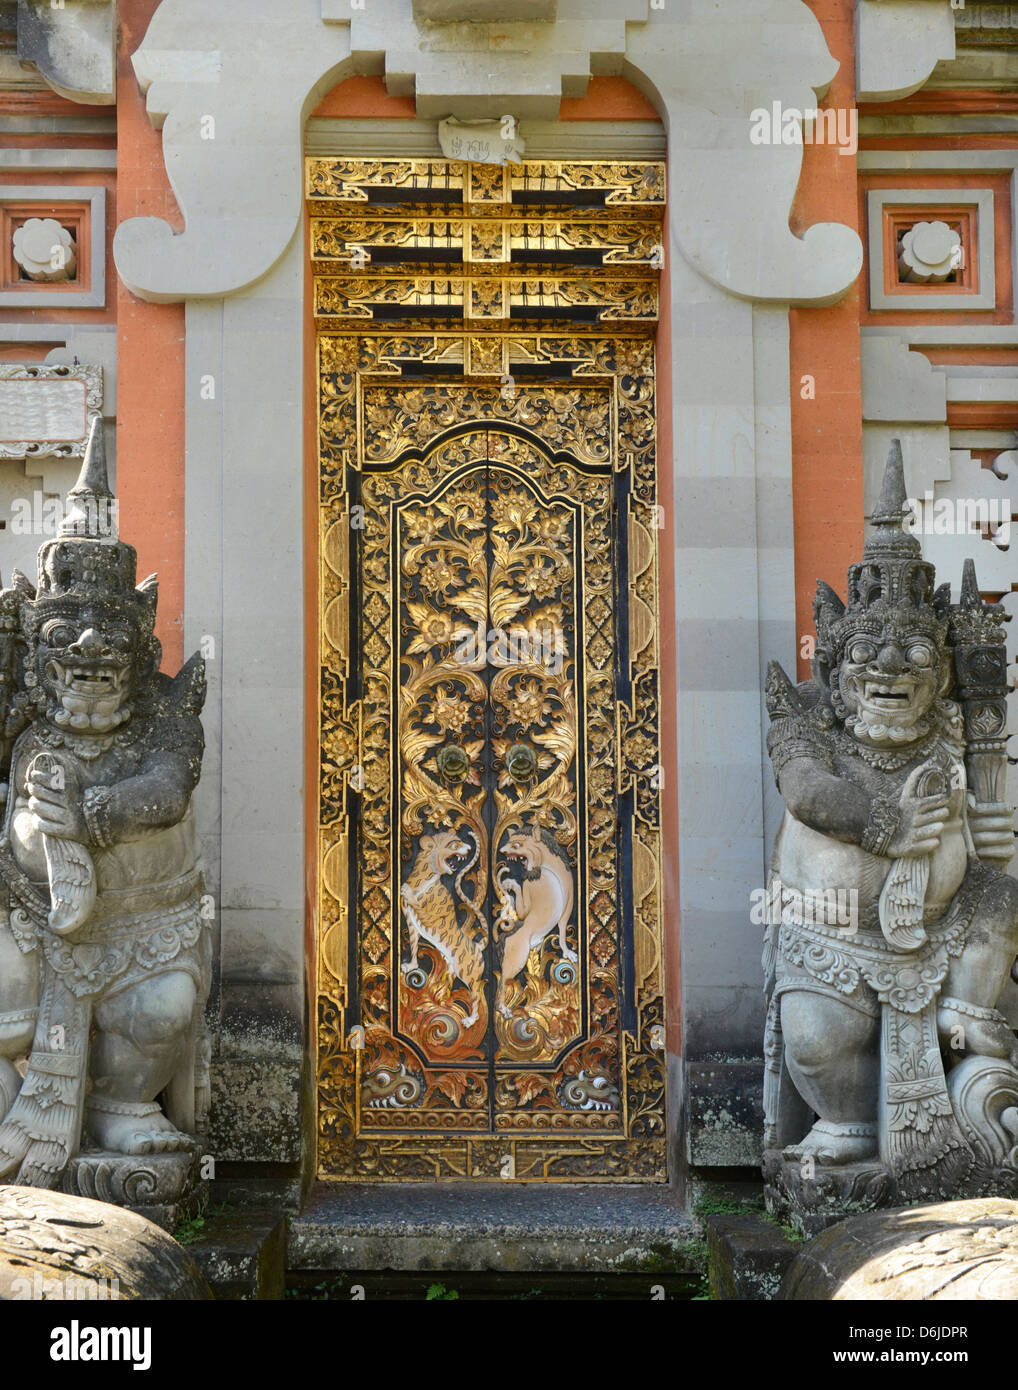 Door of a wealthy Balinese household, Bali, Indonesia, Southeast Asia, Asia - Stock Image